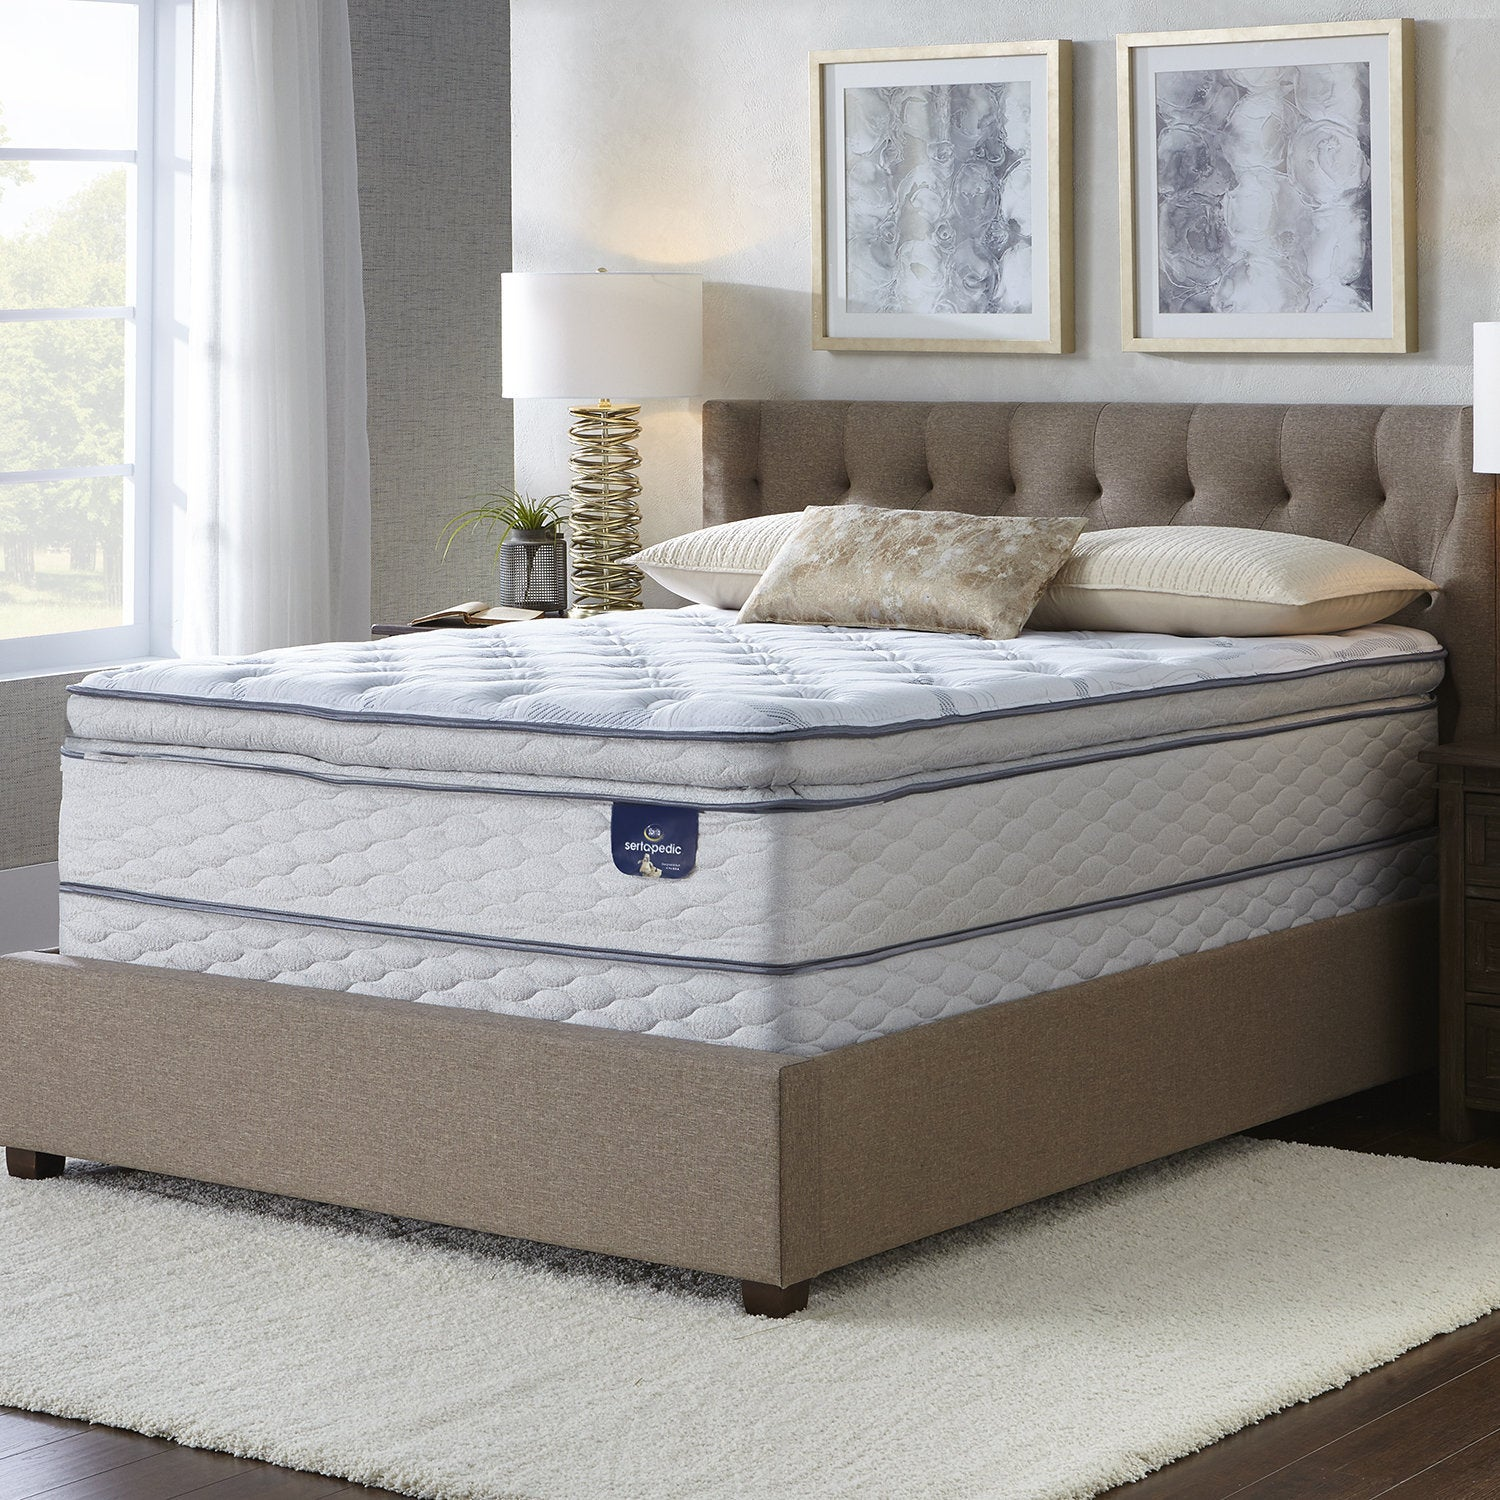 mattress glenellen top sleeper perfect on restorative queen nongzi sleep pillow topper rediscover serta p co pillowtop the